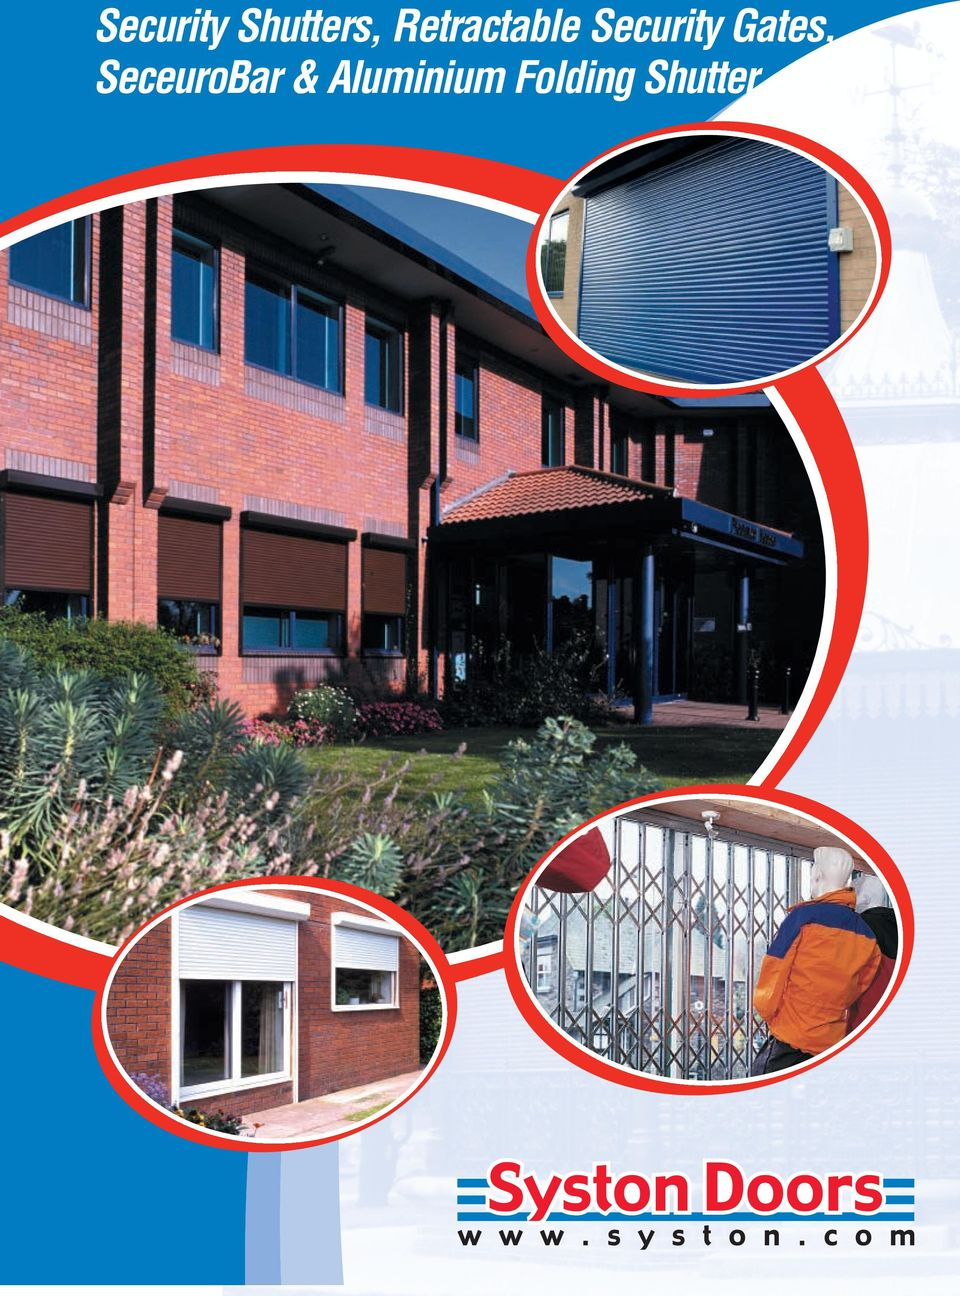 Security Shutters Retractable Security Gates Seceurobar